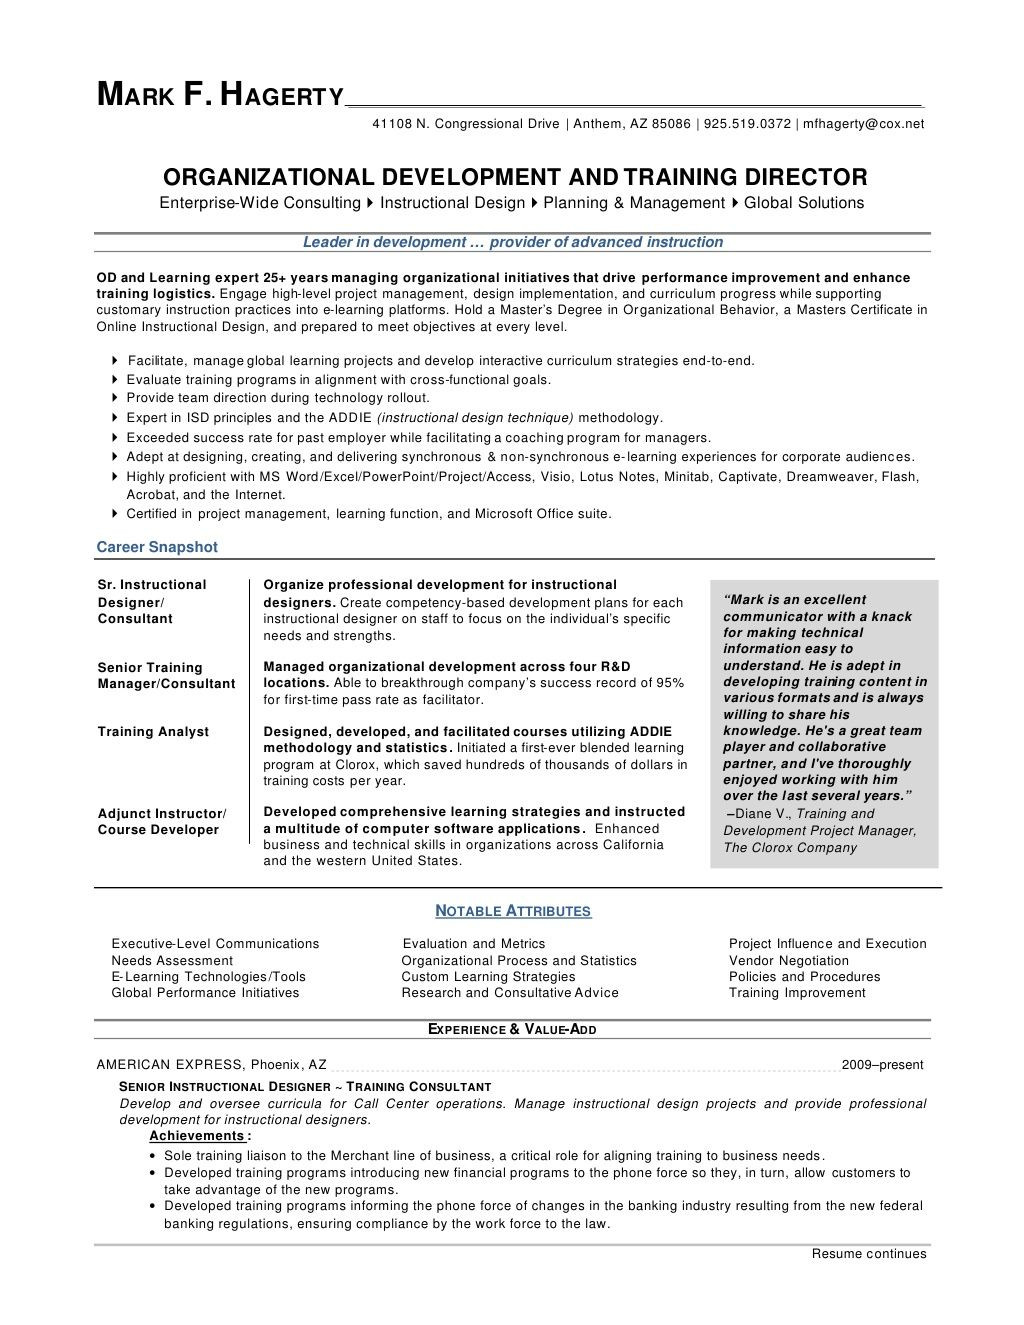 Training and Development Manager Resume Sample Training Manager Cv Examples October 2021